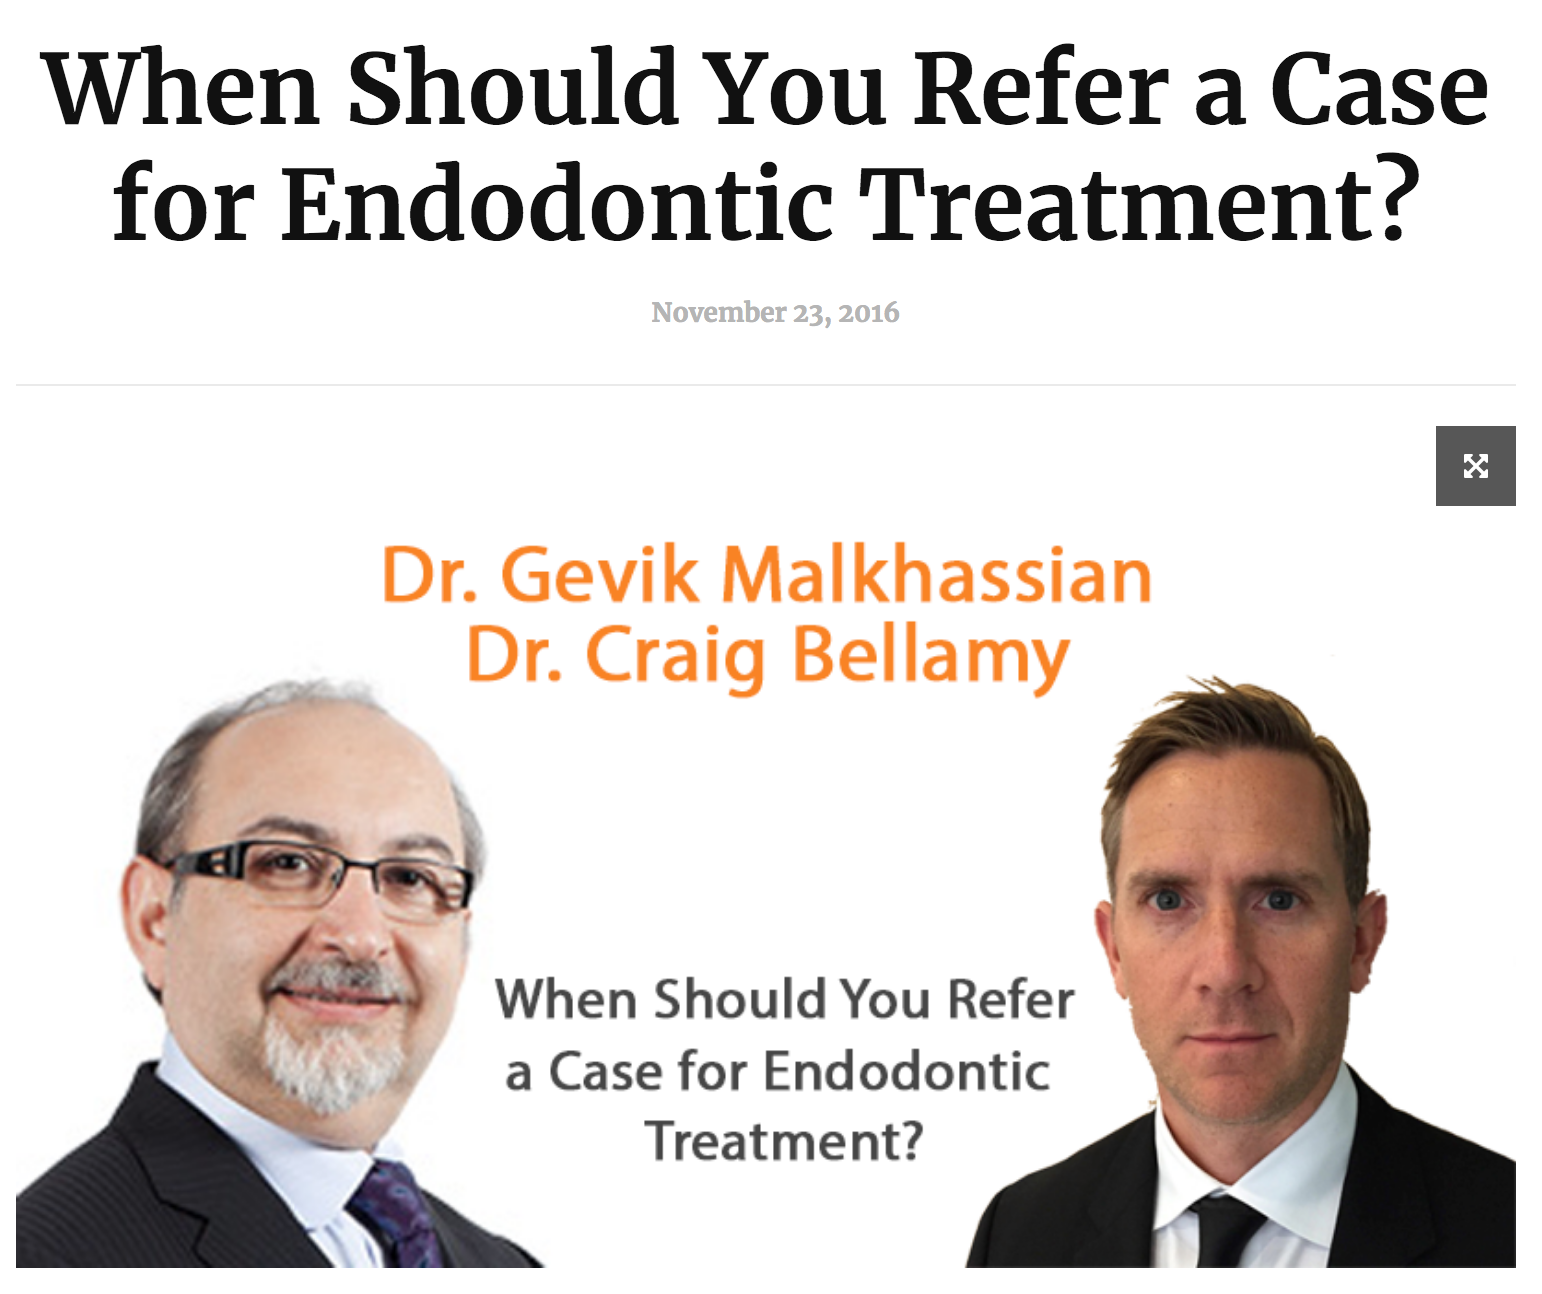 Dr. Gevik Malkhassian - When should you Refer a Case for Endodontic Treatment?